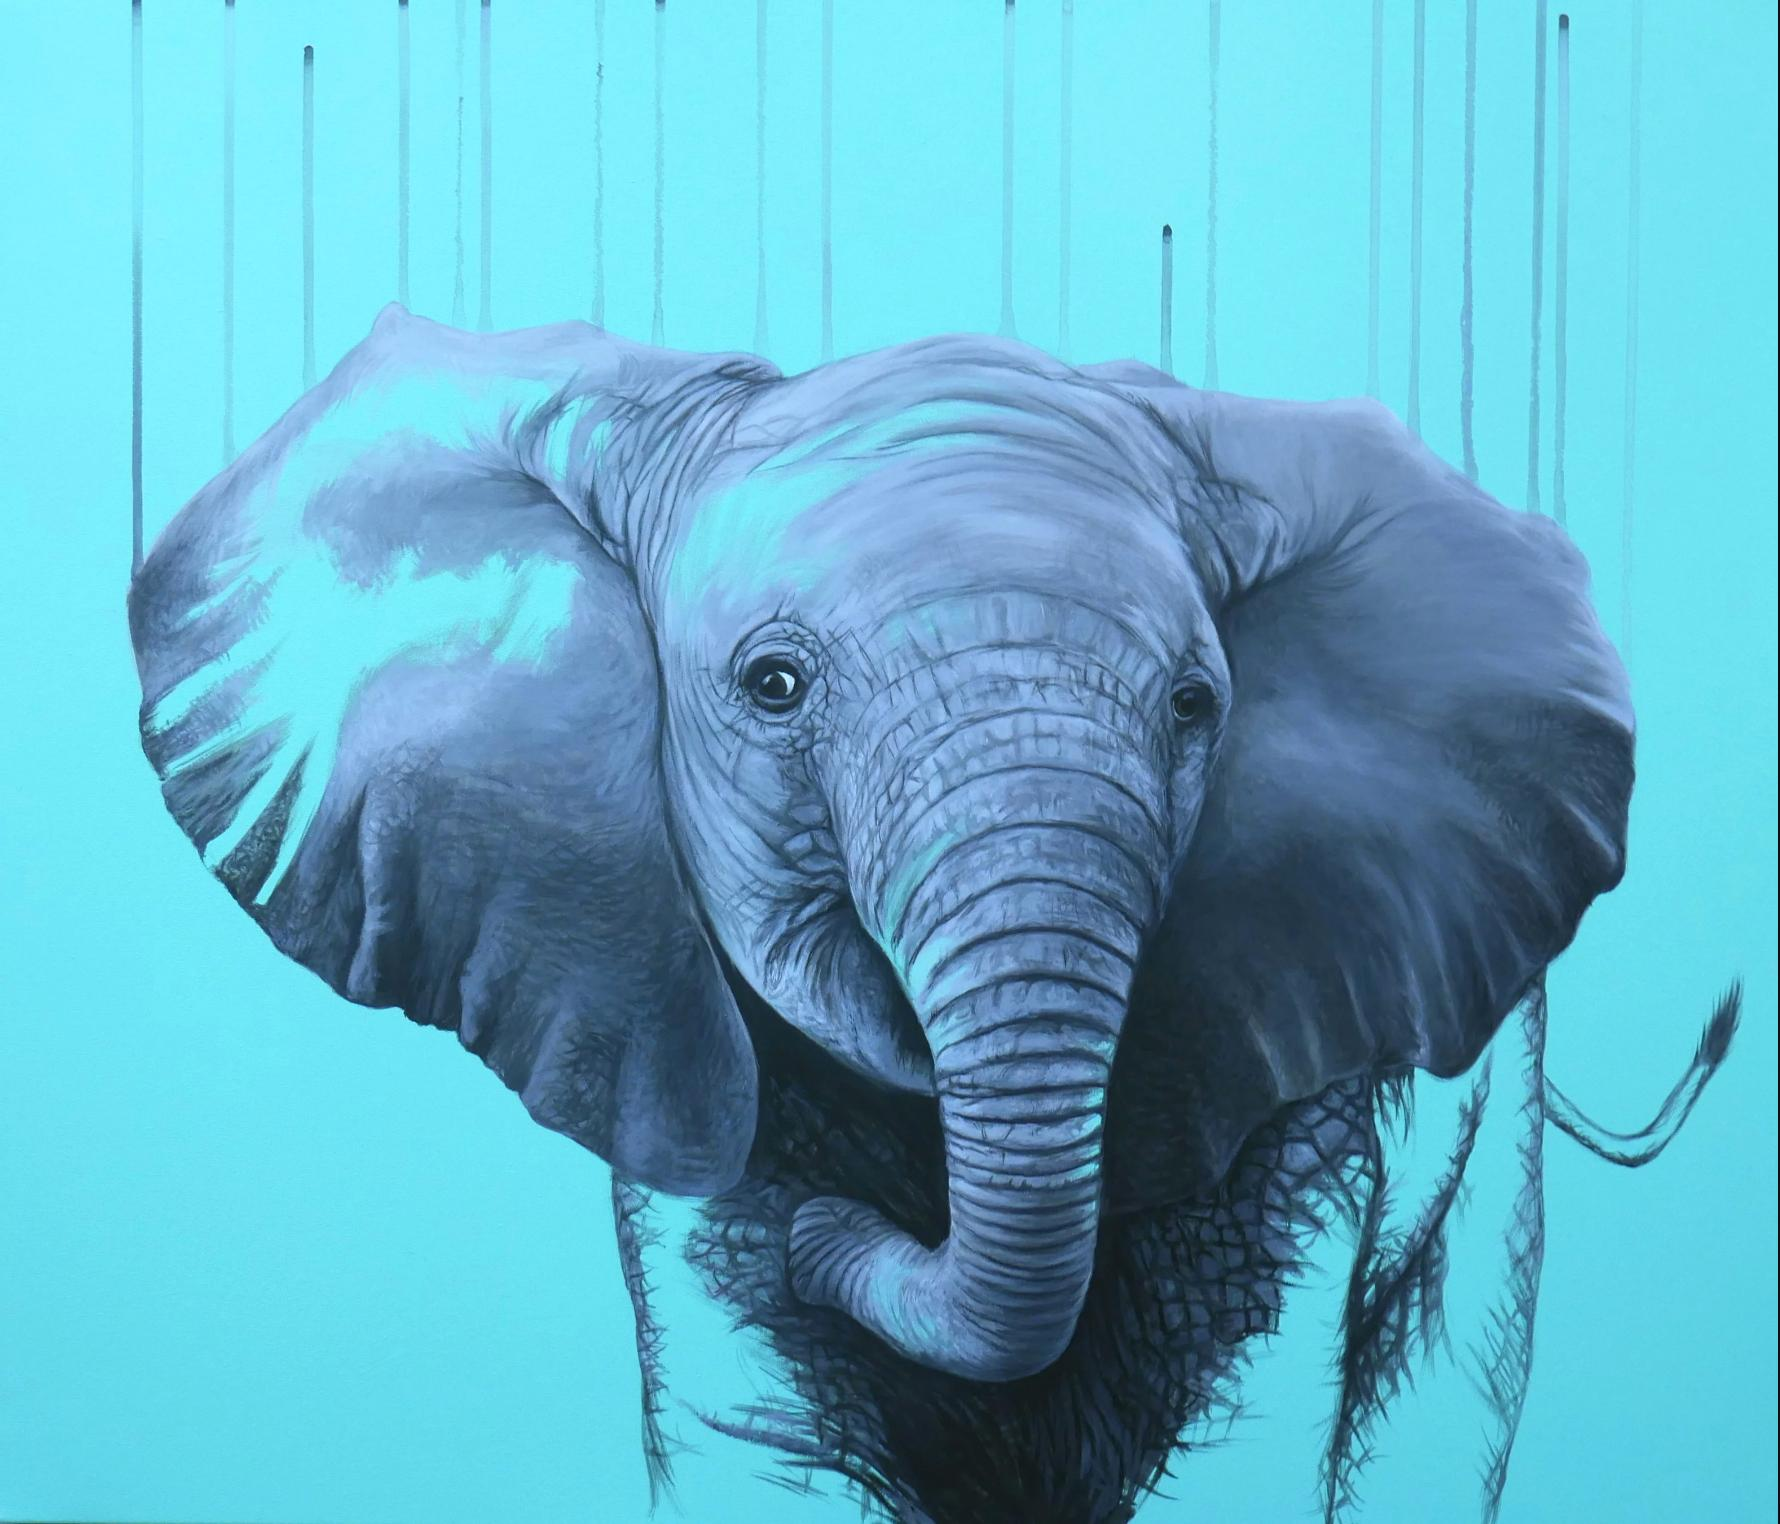 You are a Star by Louise McNaught - Blue Pop Elephant Animal Contemporary Print